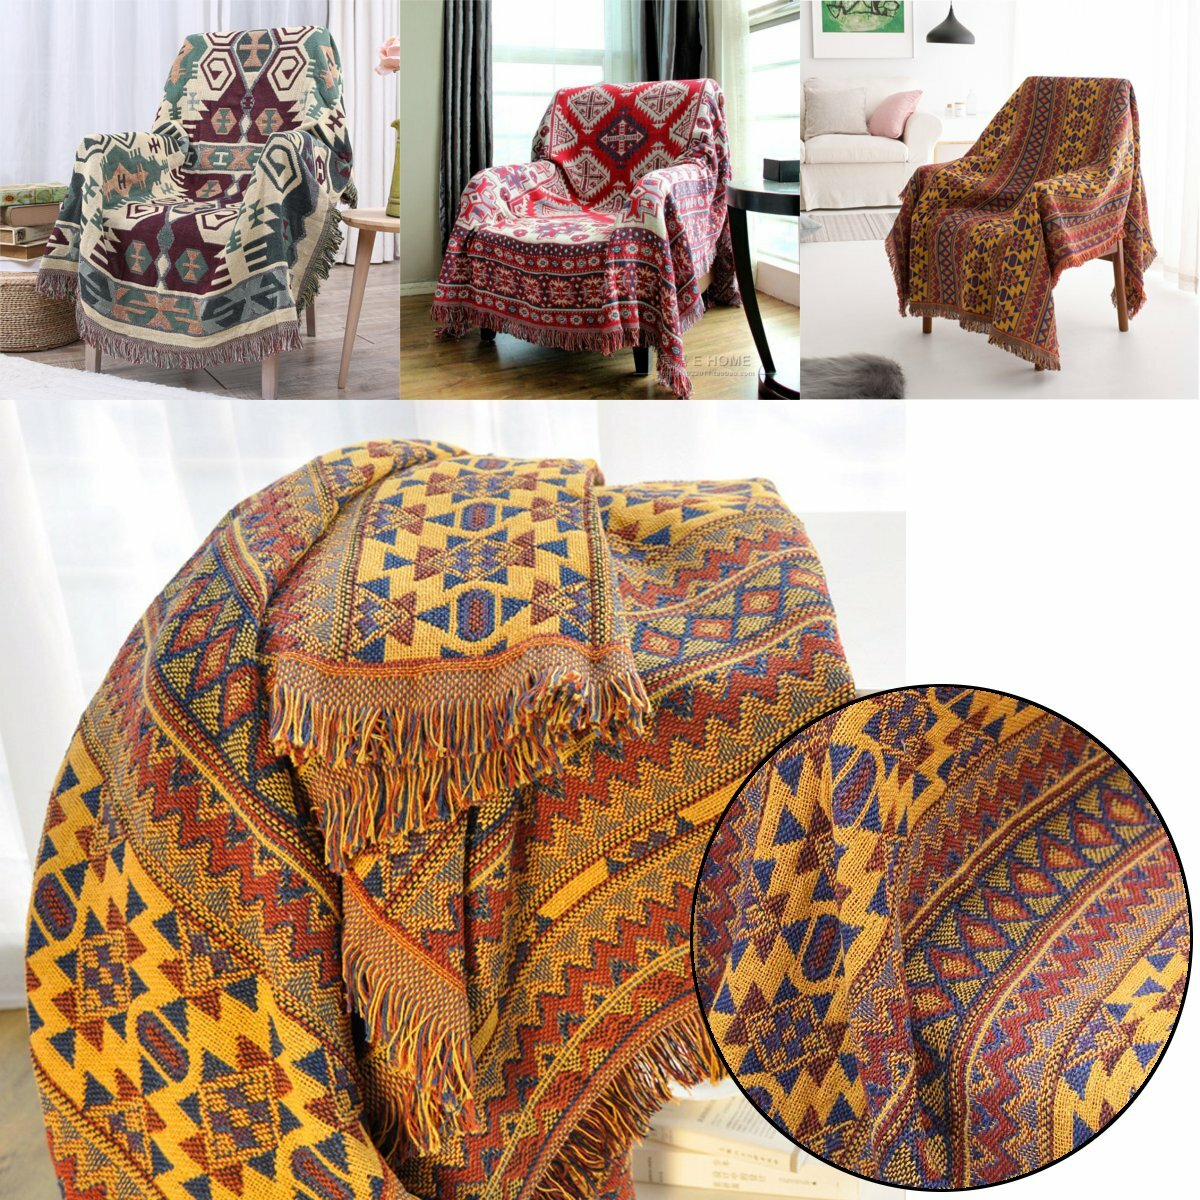 Cotton Knitted Blankets Throw Tribal Bohemian Ethnic Sofa Bedding Home Decor - 1